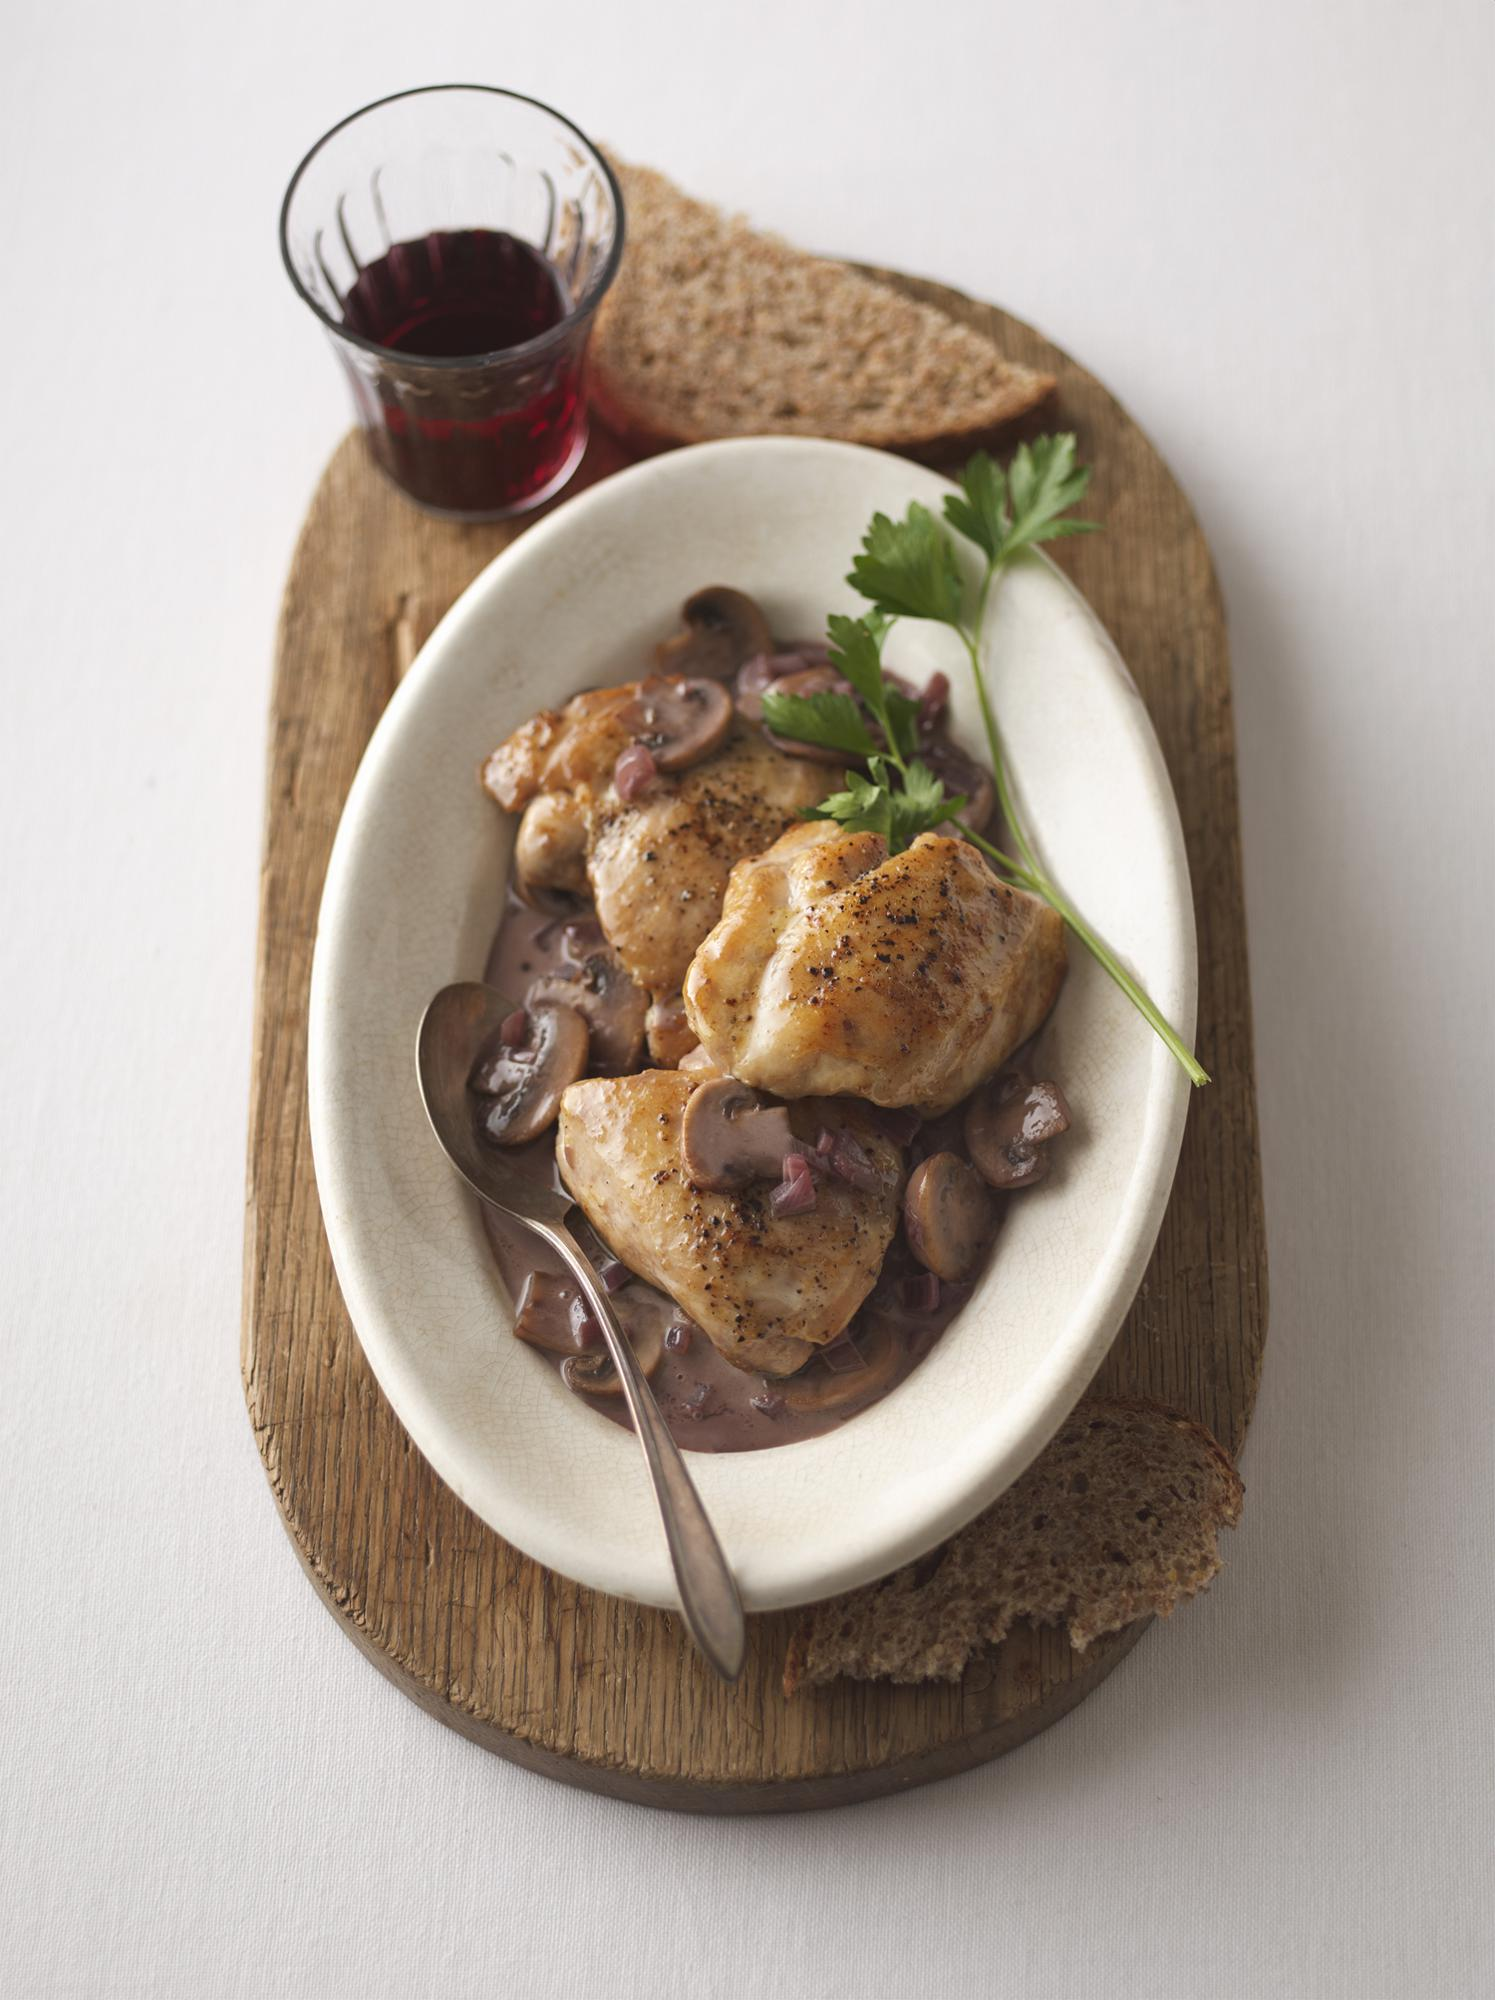 Pan-Seared Chicken with Mushrooms in Creamy Port Sauce